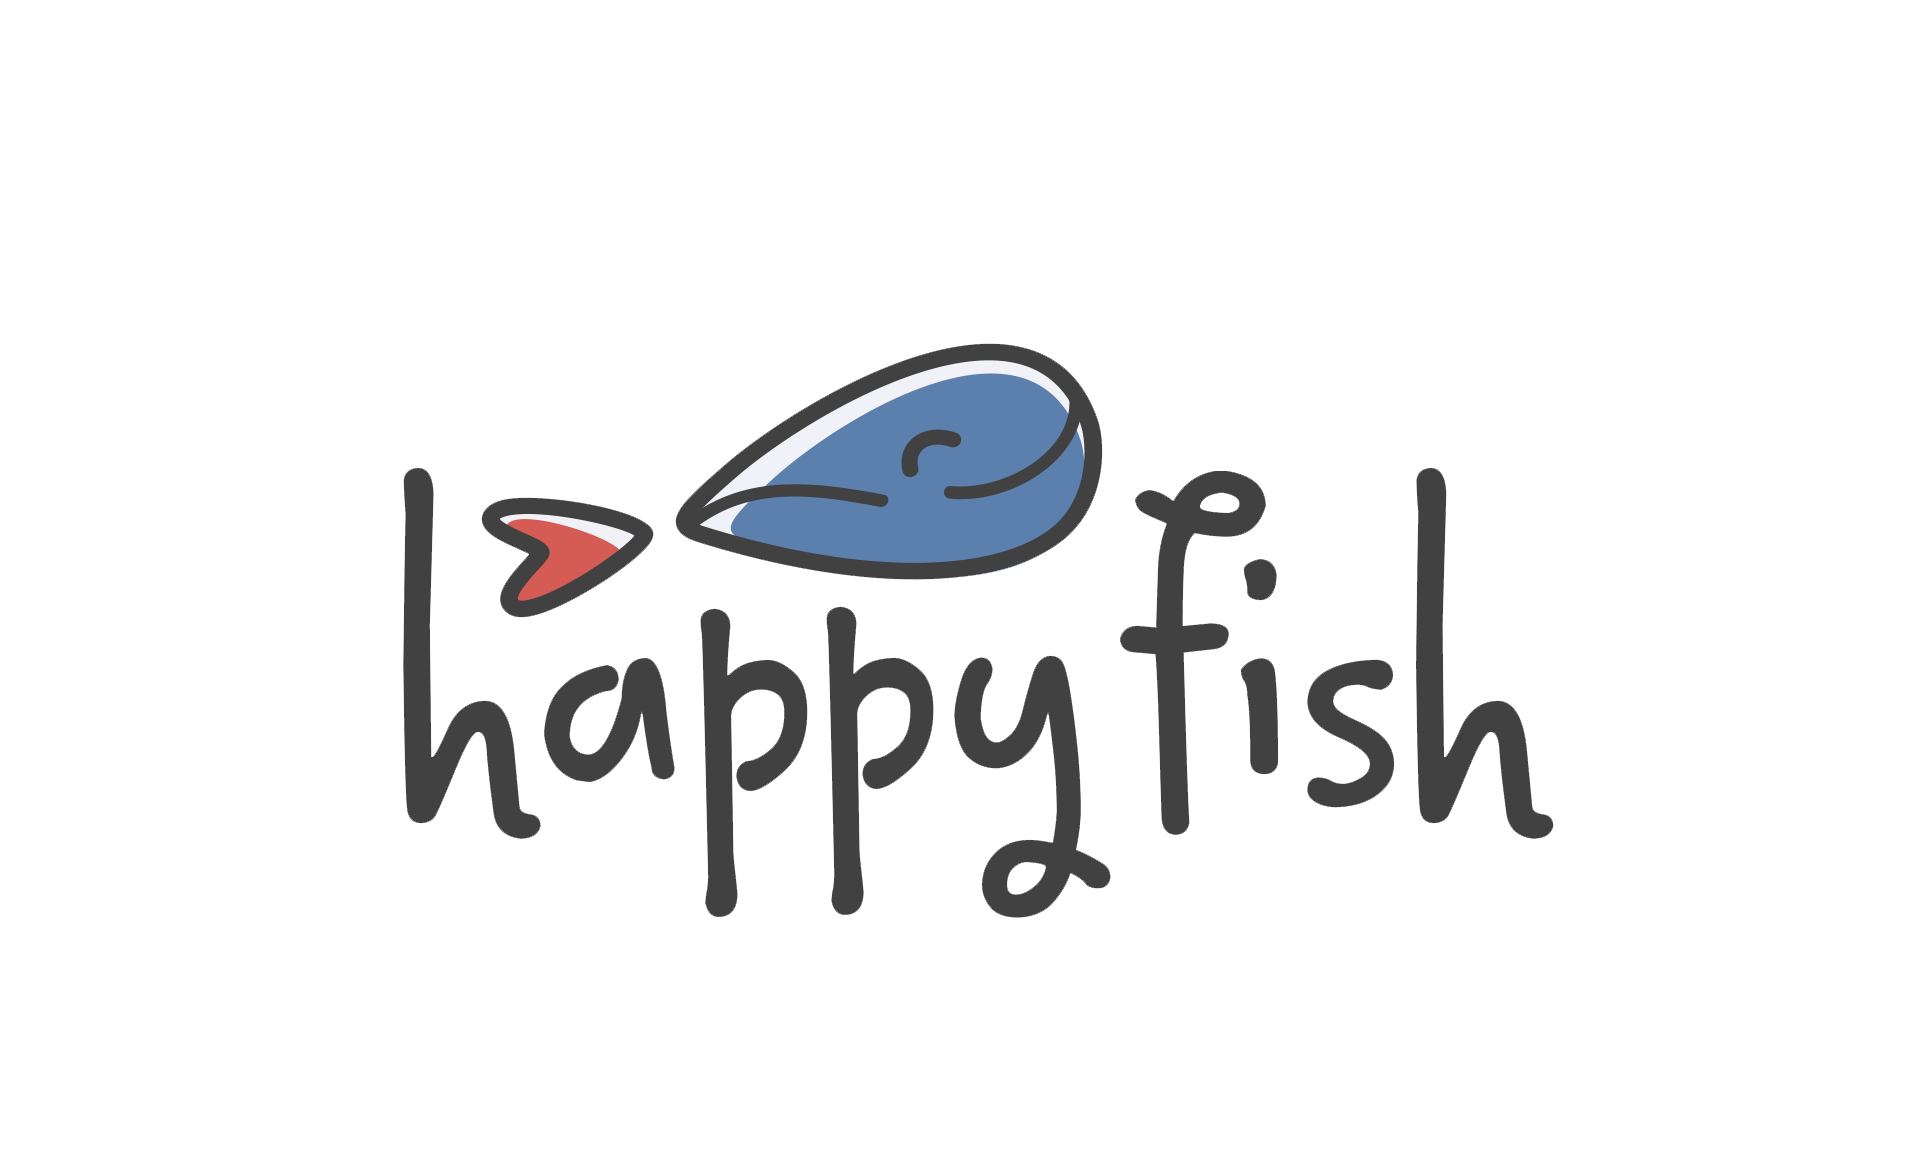 HappyFish Logo